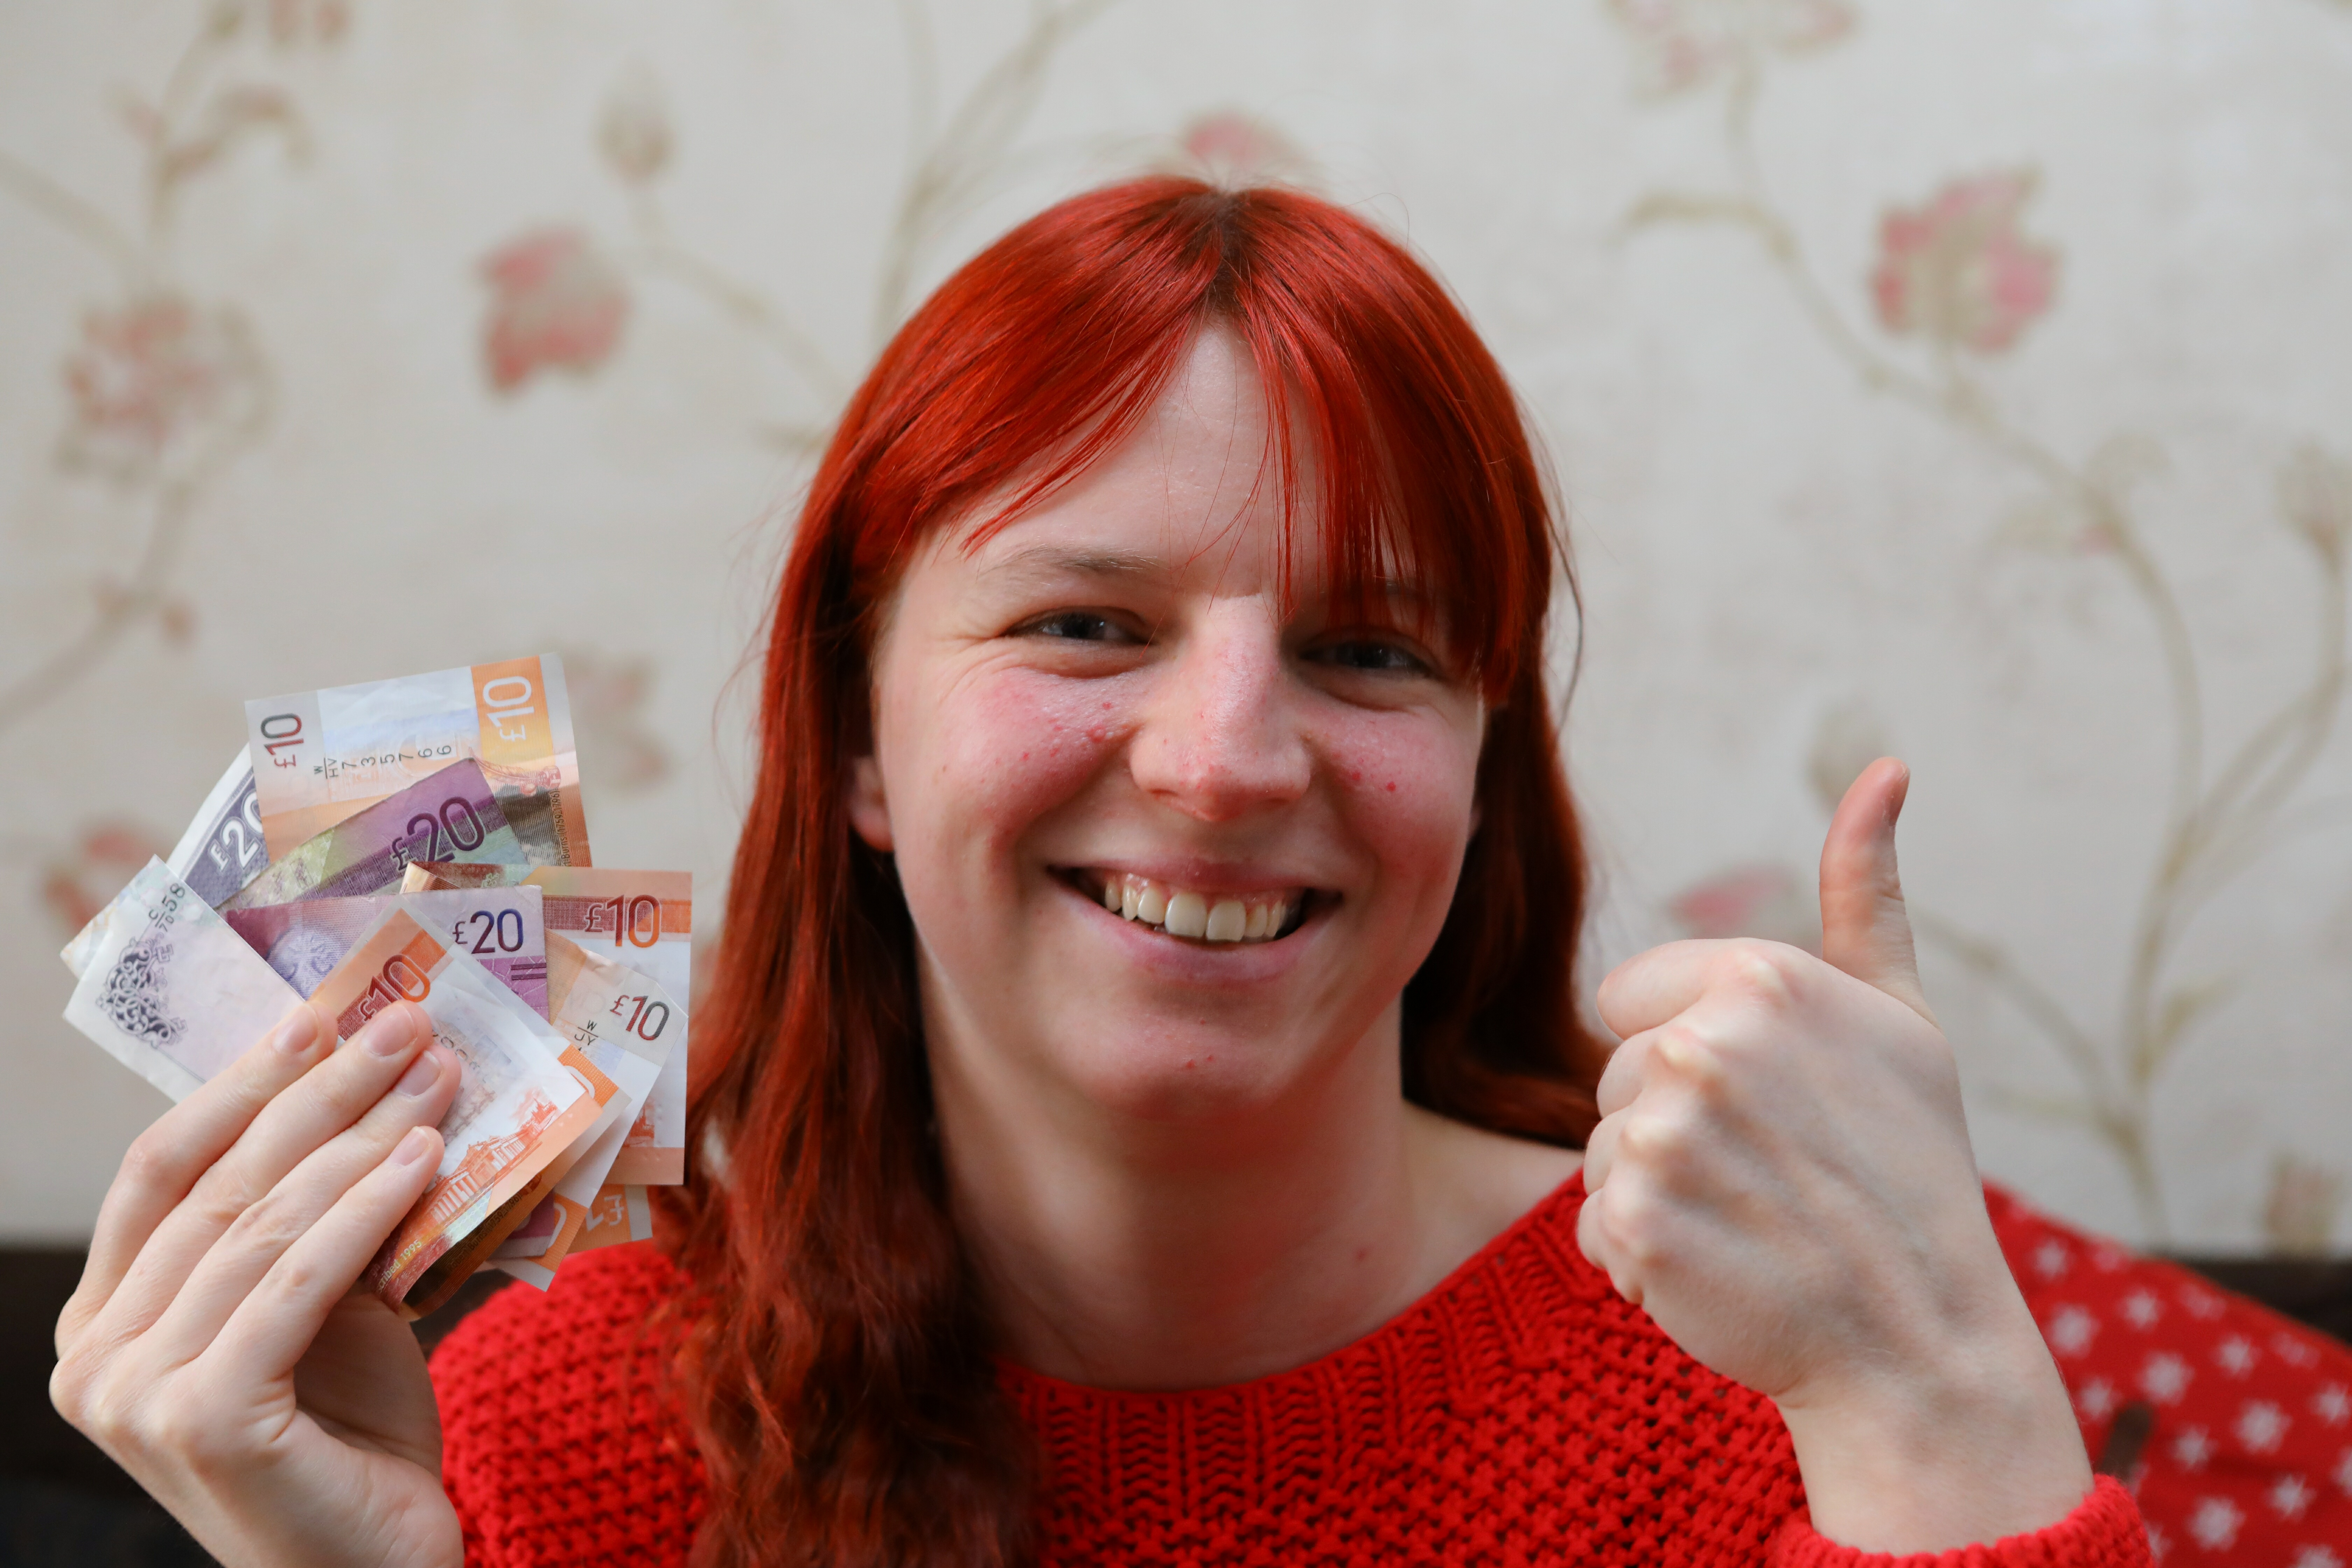 Shonni Cullen with her winnings.